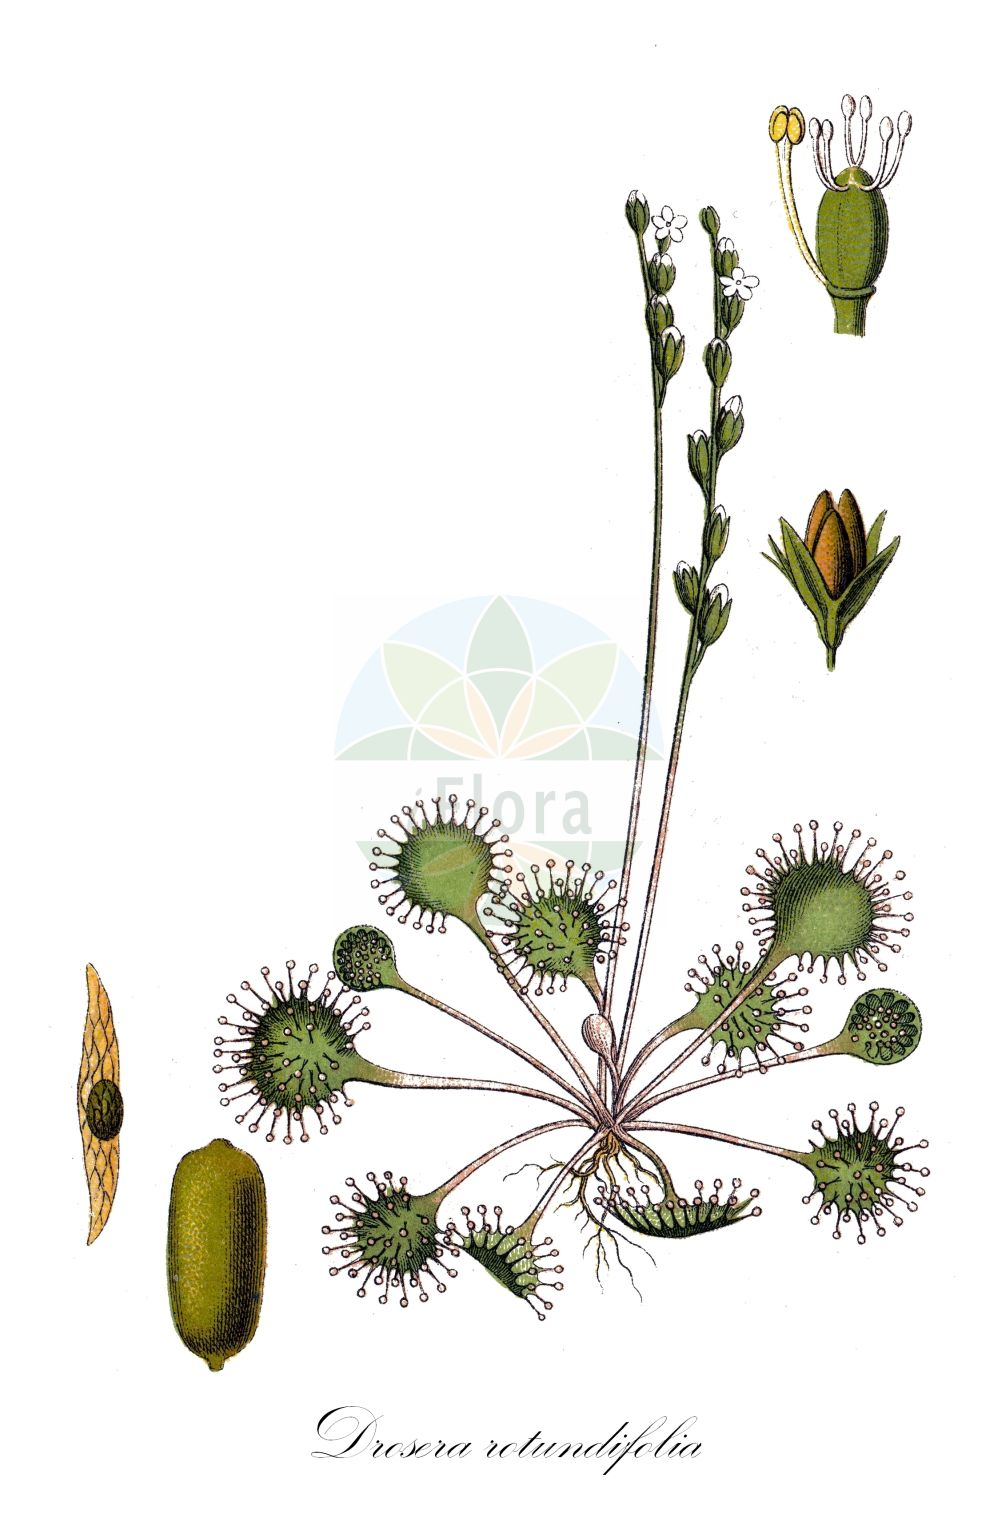 Historische Abbildung von Drosera rotundifolia (Rundblaettriger Sonnentau - Round-leaved Sundew). ---- Historical Drawing of Drosera rotundifolia (Rundblaettriger Sonnentau - Round-leaved Sundew). (Drosera rotundifolia,Rundblaettriger Sonnentau,Round-leaved Sundew,Drosera corsica,,Common Sundew,Roundleaf Sundew,Sundew,Drosera,Sonnentau,Sundew,Droseraceae,Sonnentaugewaechse,Sundew family,Sturm (1796f))